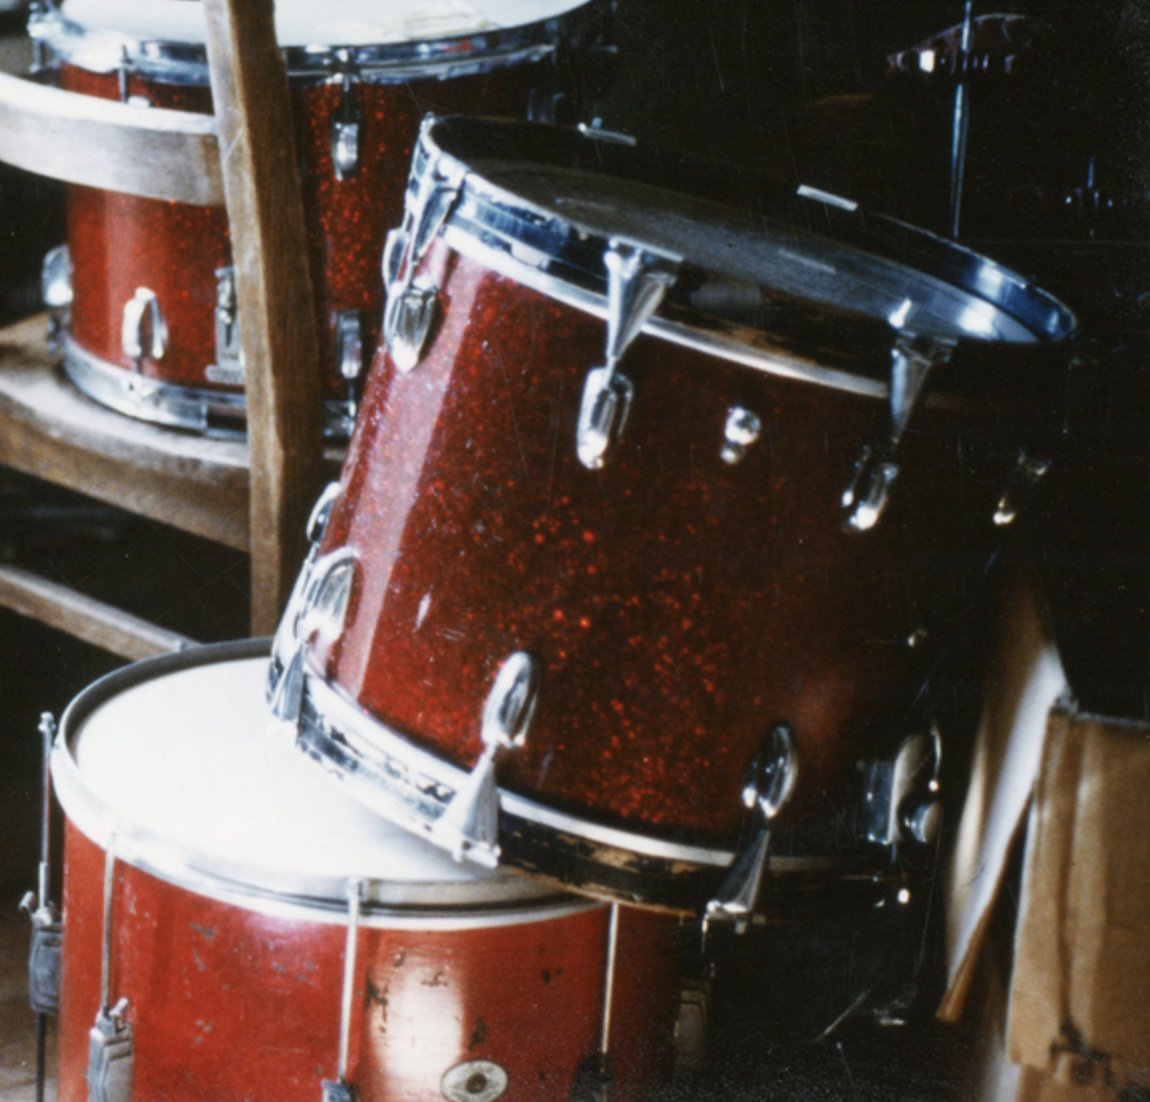 We're looking for a drummer! Info here: https://t.co/69PffWt9S4 https://t.co/YB2UqByGID